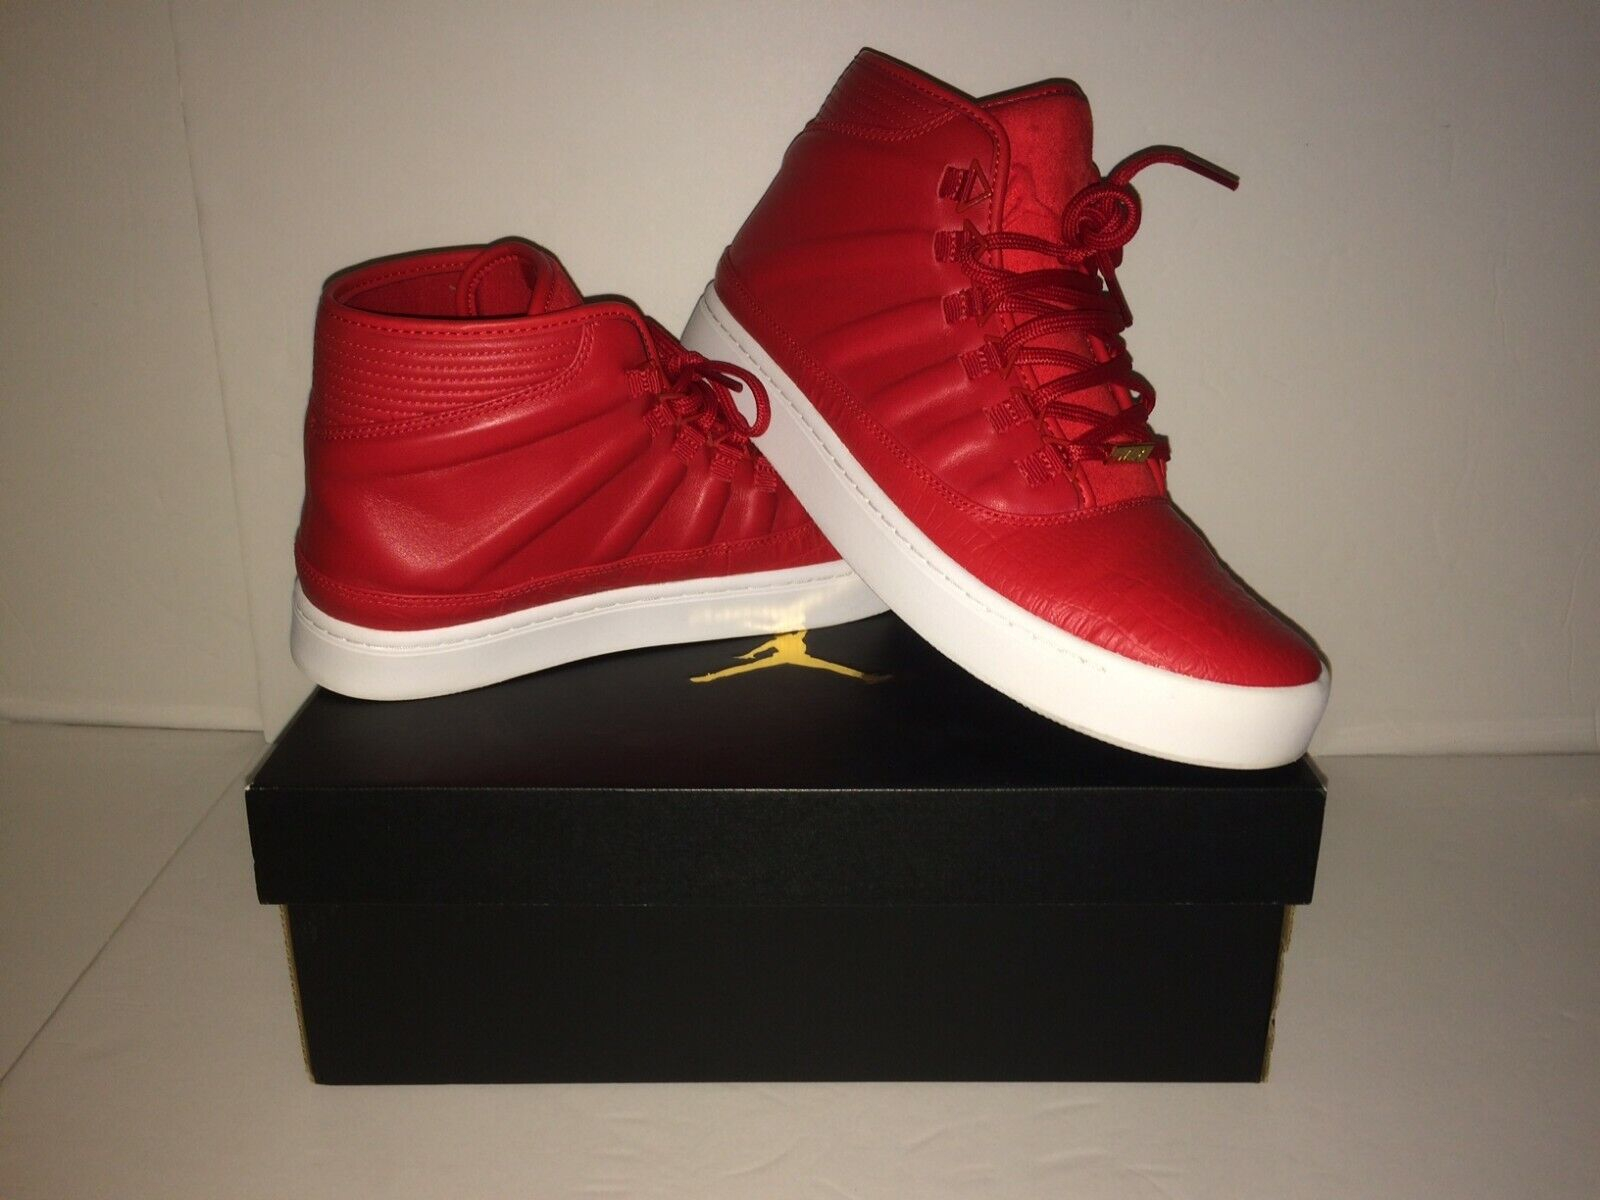 NIKE AIR JORDAN WESTBROOK 0 RED Jumpman Men's SZ 10.5 Leather EUC